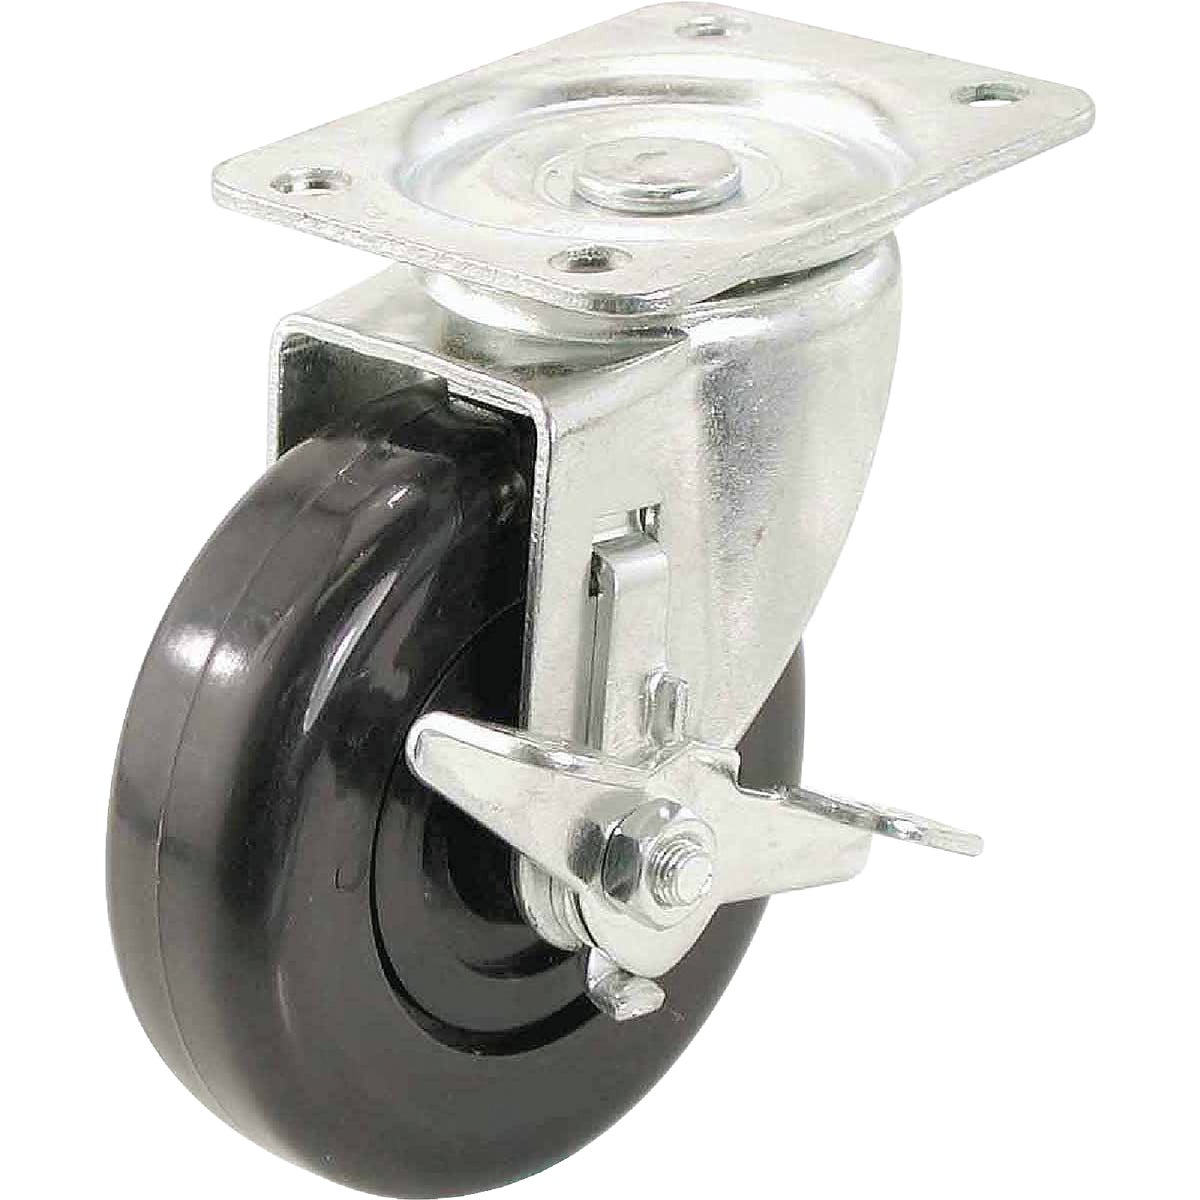 "4"" SP CASTER W/ BRAKE - 3116 by Shepherd Hardware"